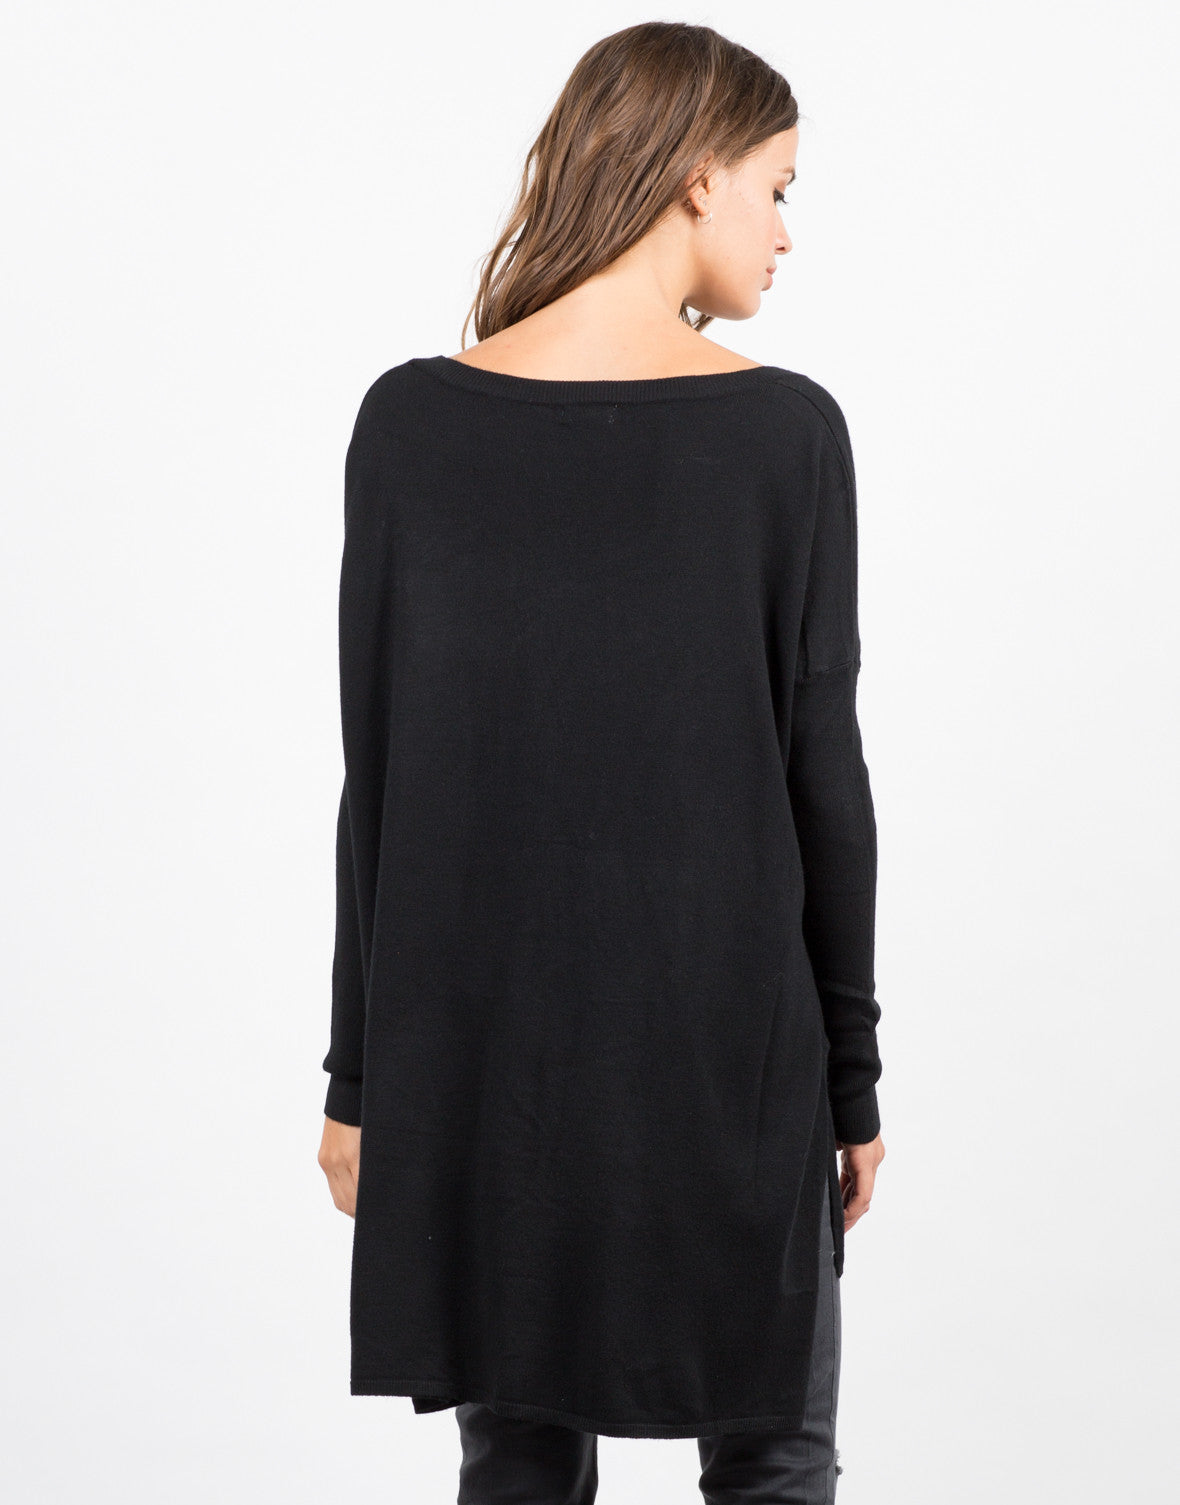 Back View of Pocket Sweater Top